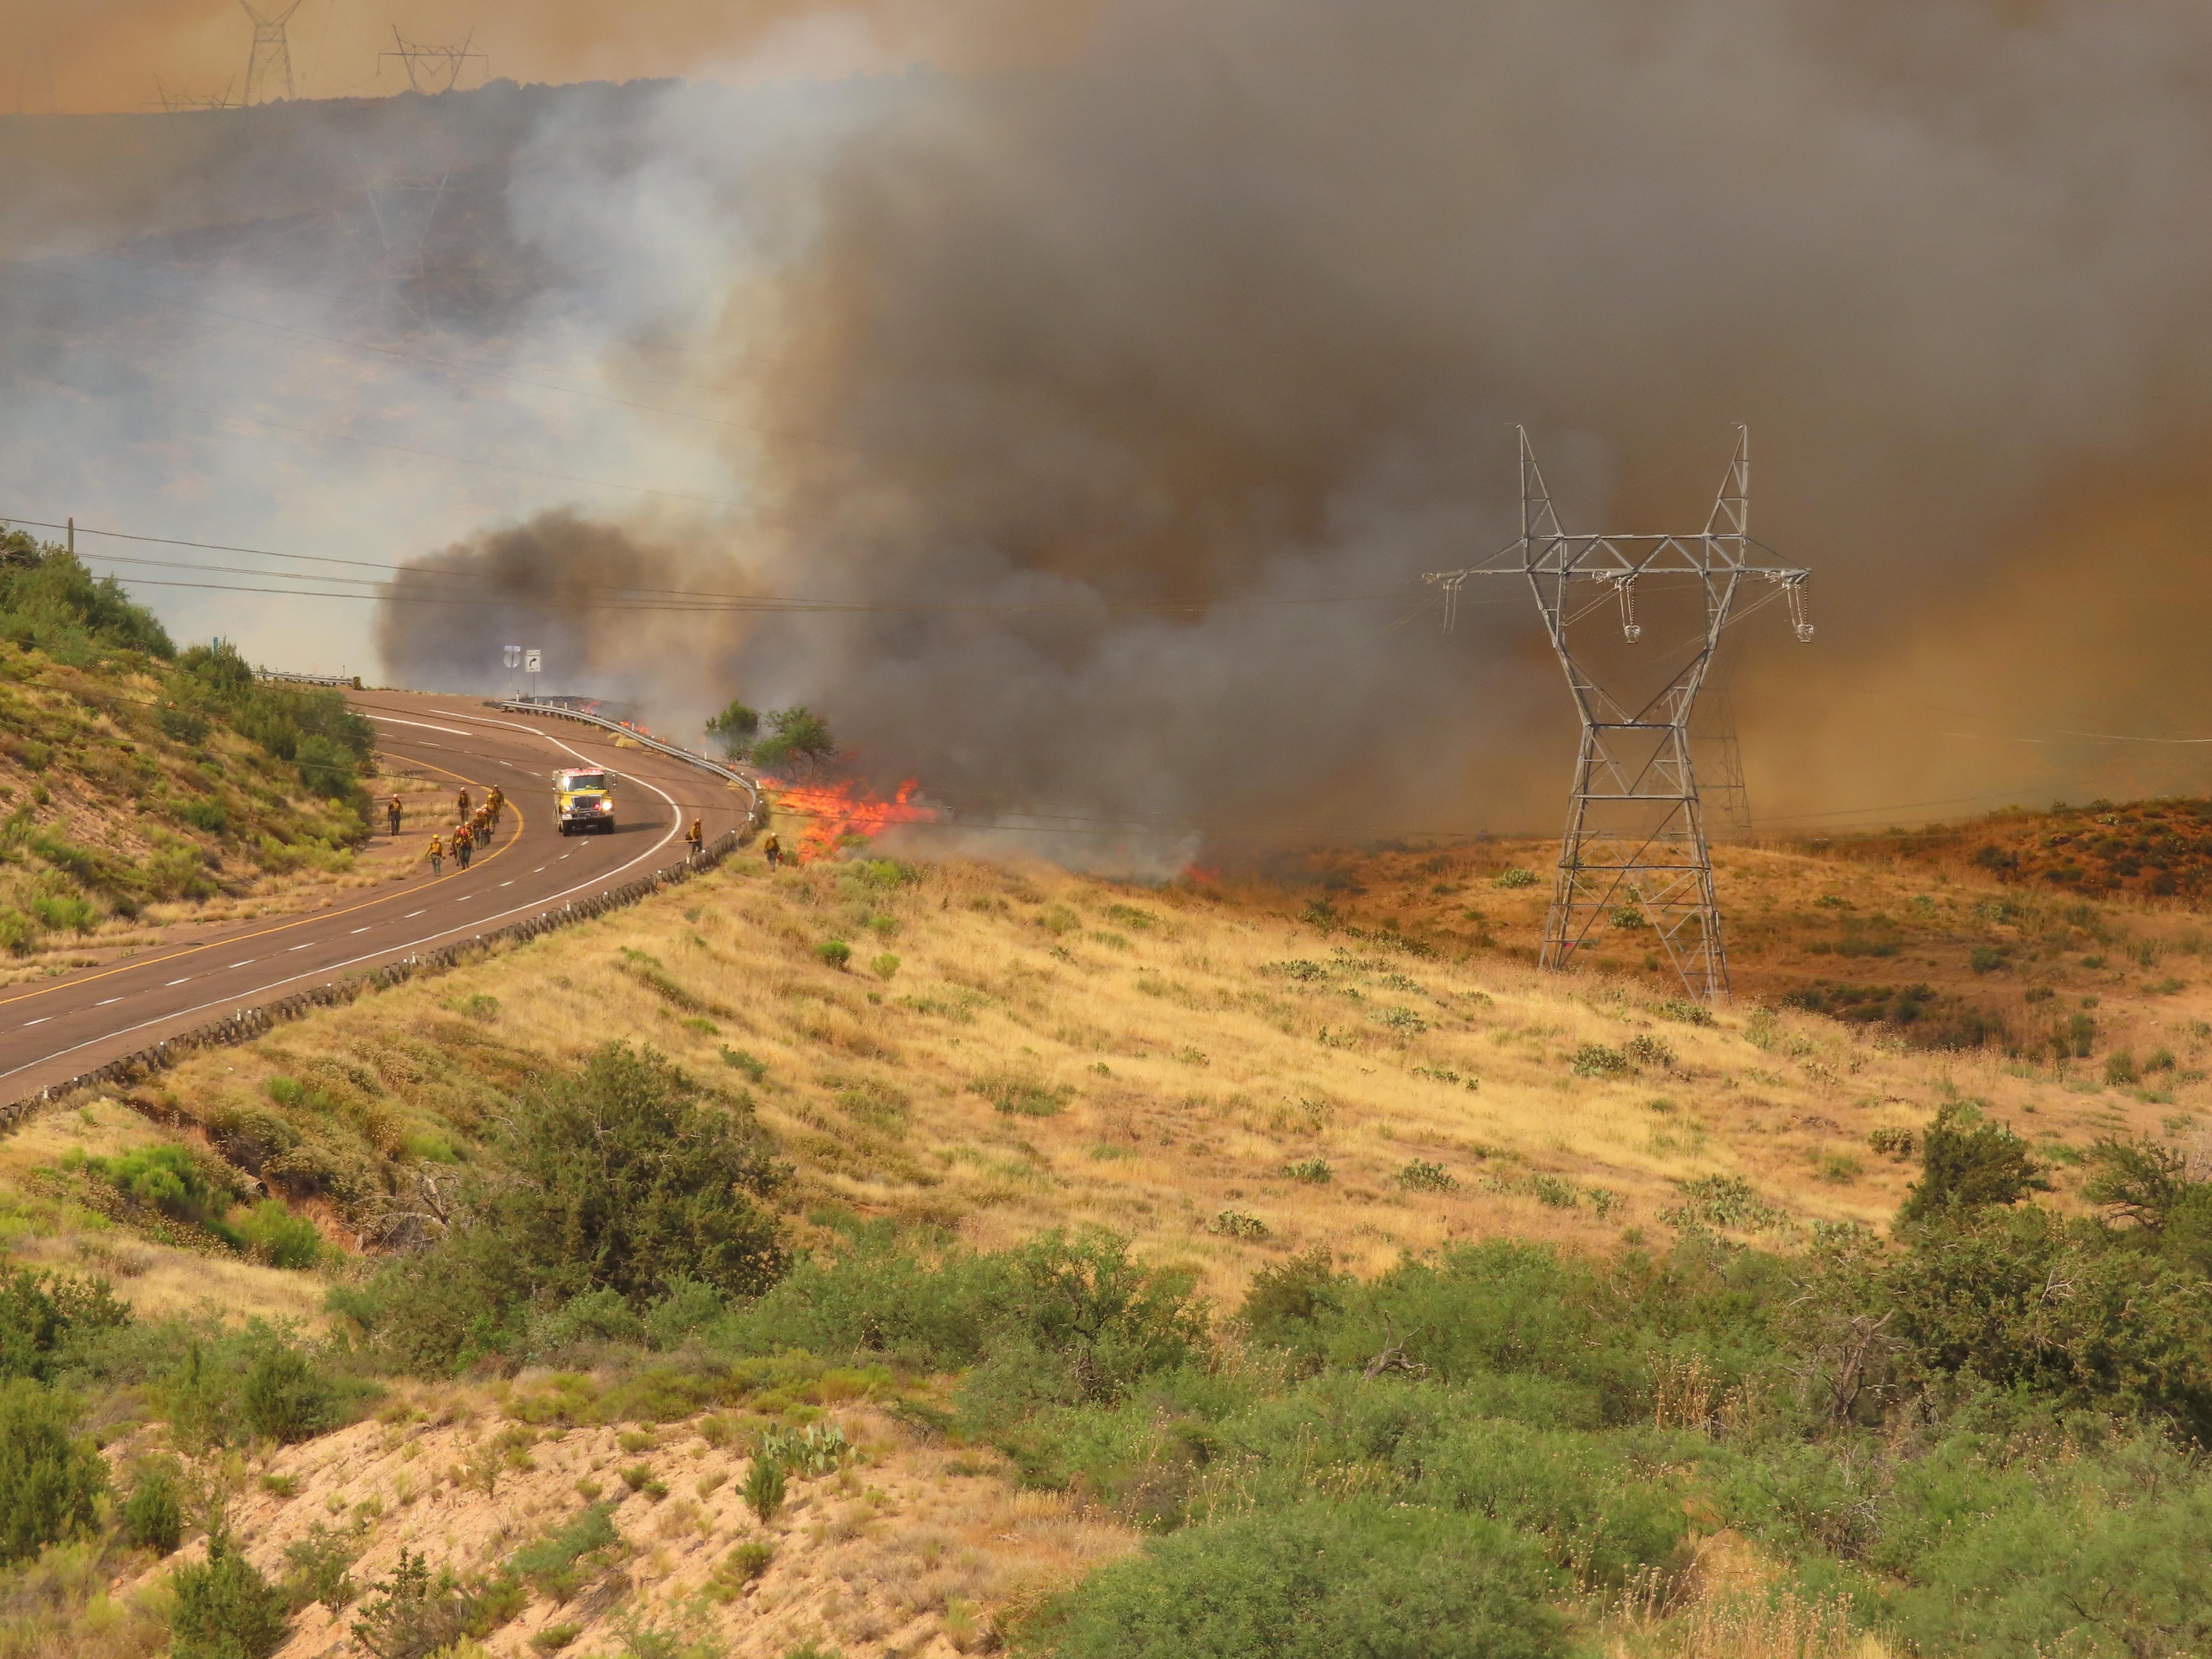 Firefighters work to contain the Bush Fire along the highway on the Tonto National Forest.